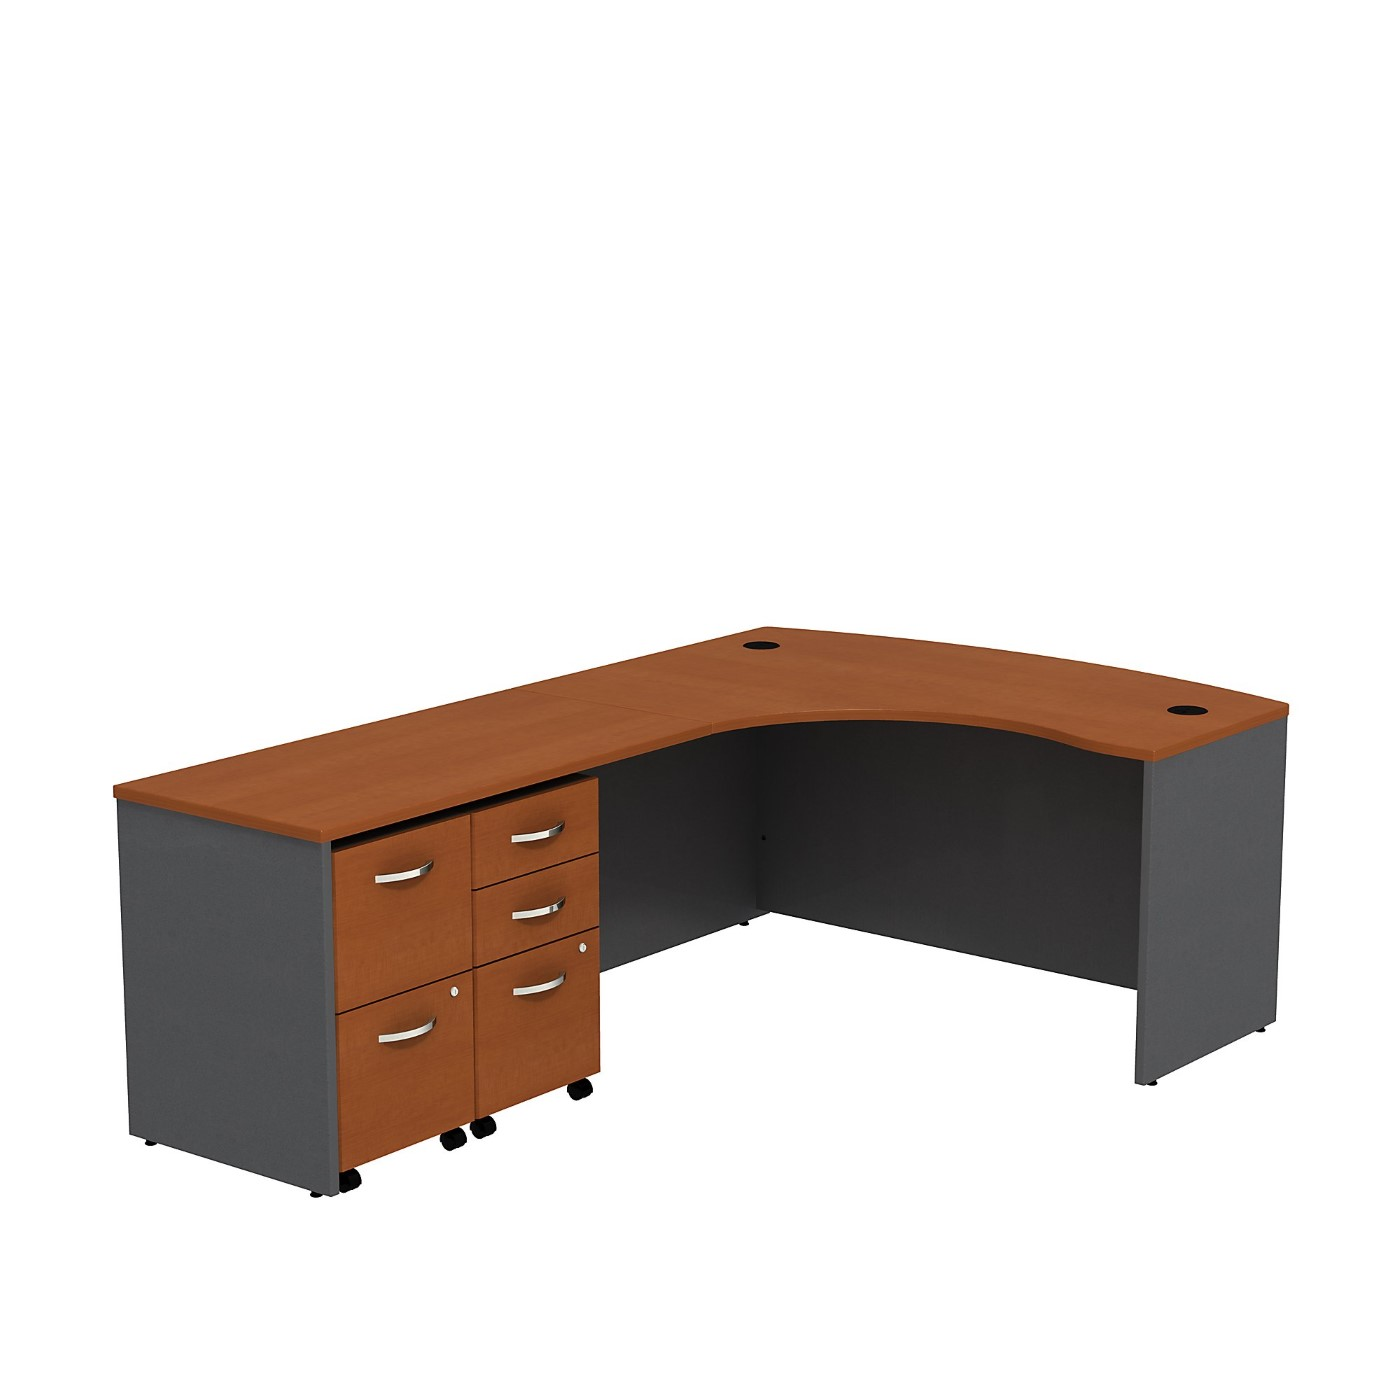 BUSH BUSINESS FURNITURE SERIES C BOW FRONT LEFT HANDED L SHAPED DESK WITH 2 MOBILE PEDESTALS. FREE SHIPPING